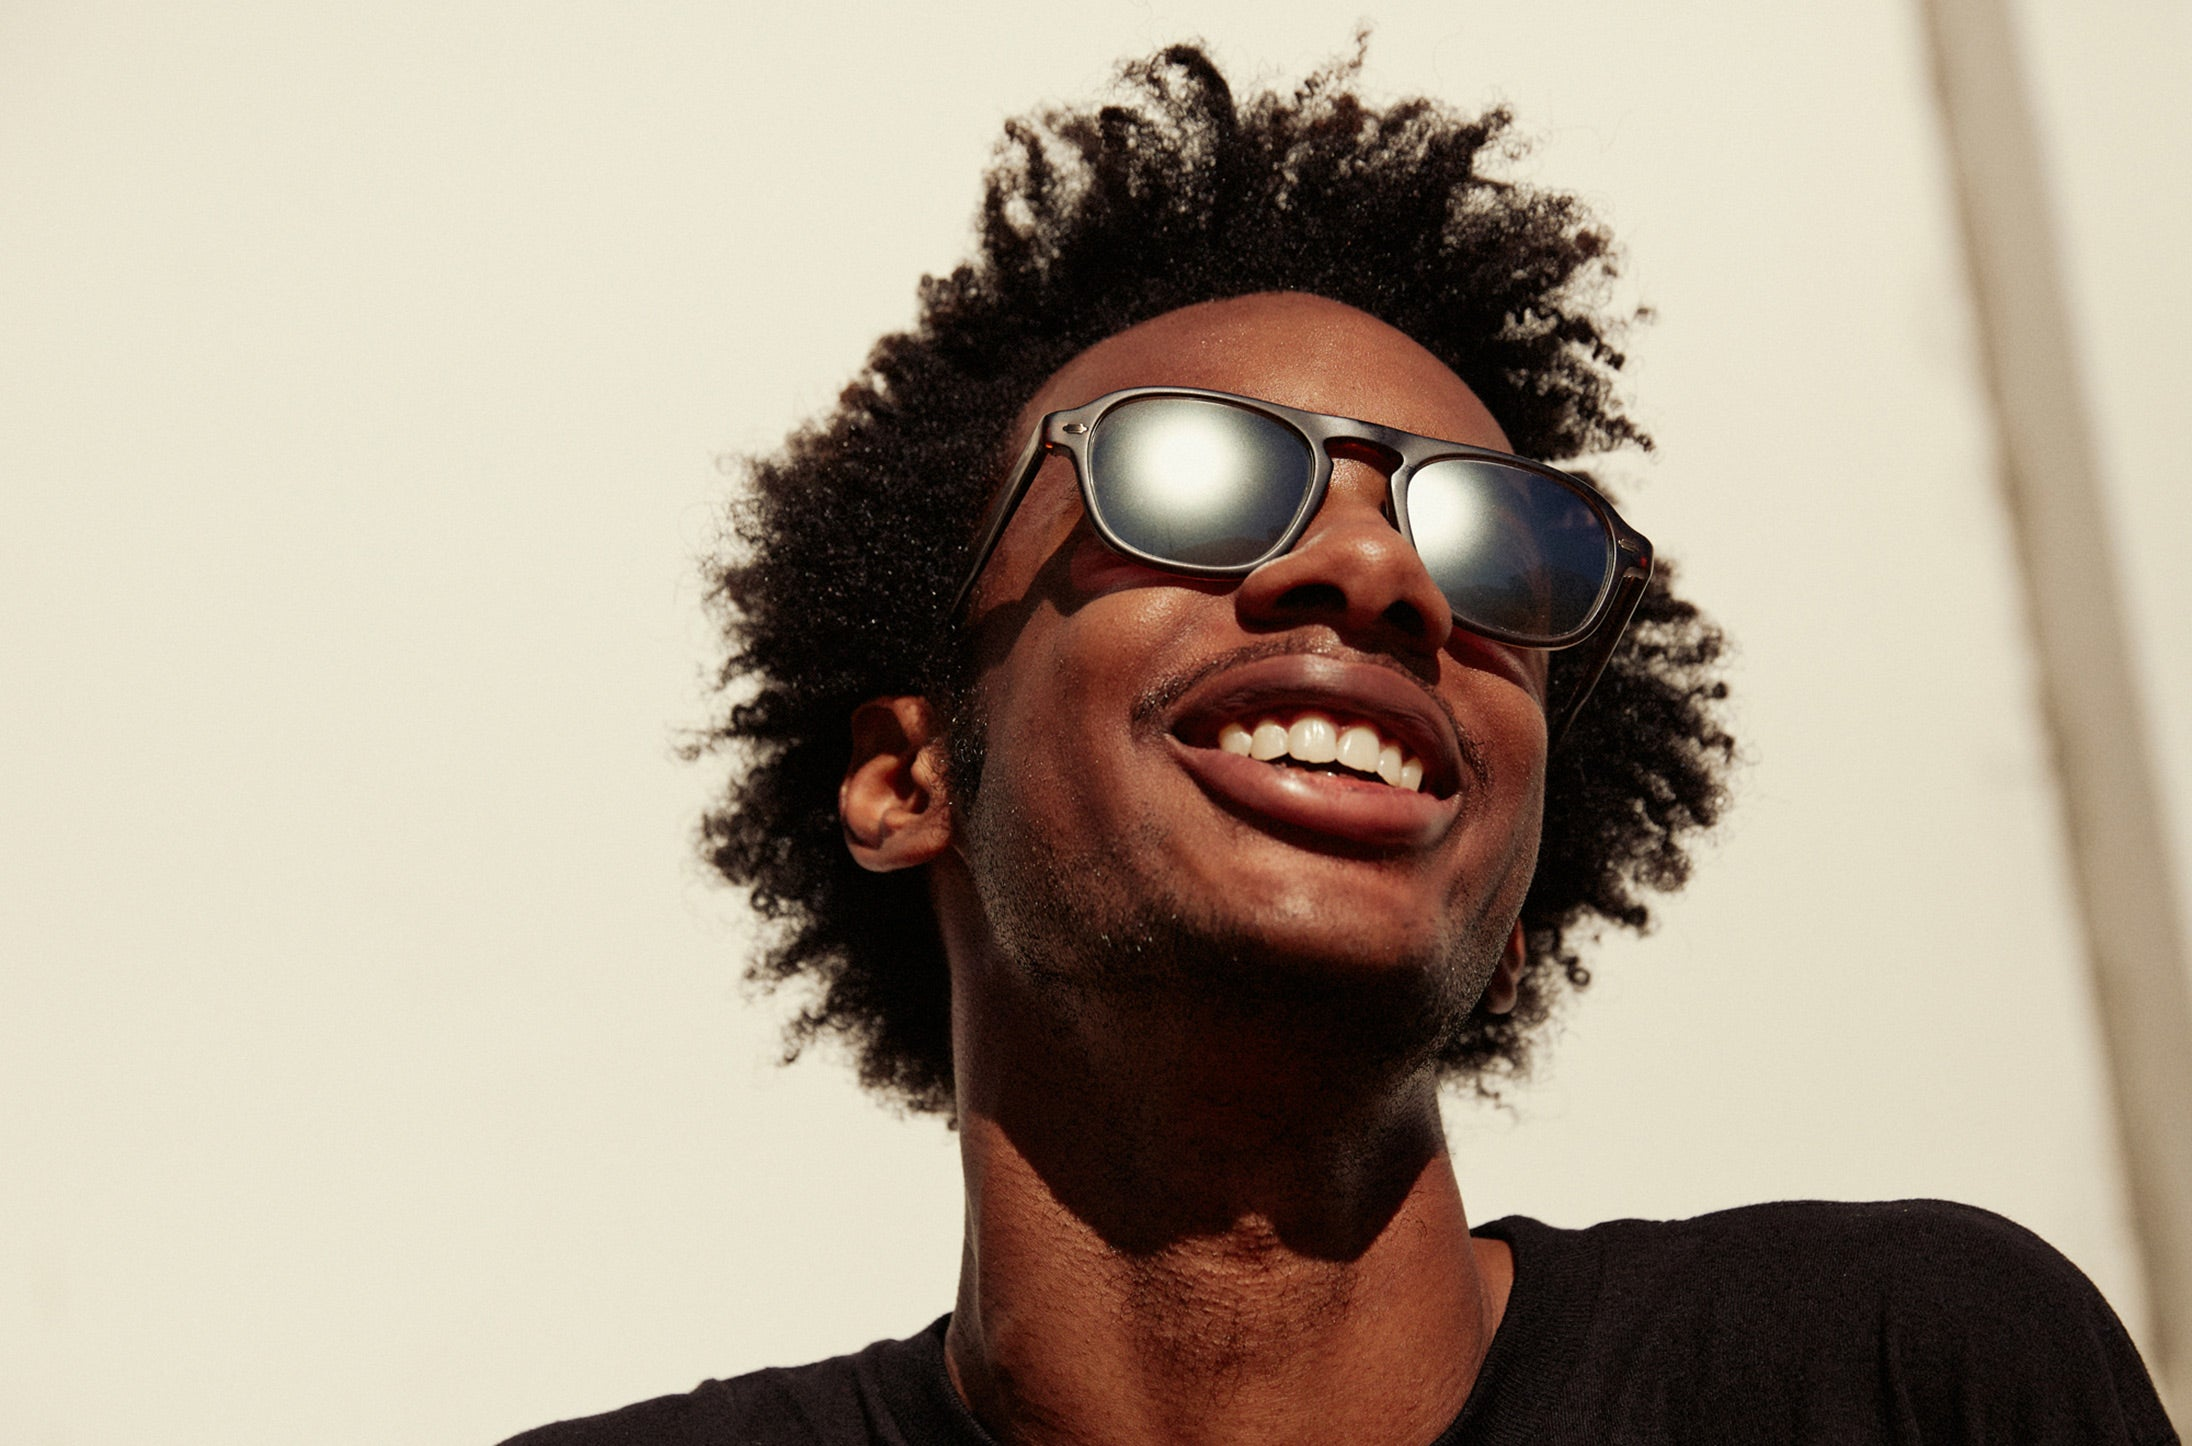 Garrett Leight Grayson men's sunglass – inspired by Arthur Miller